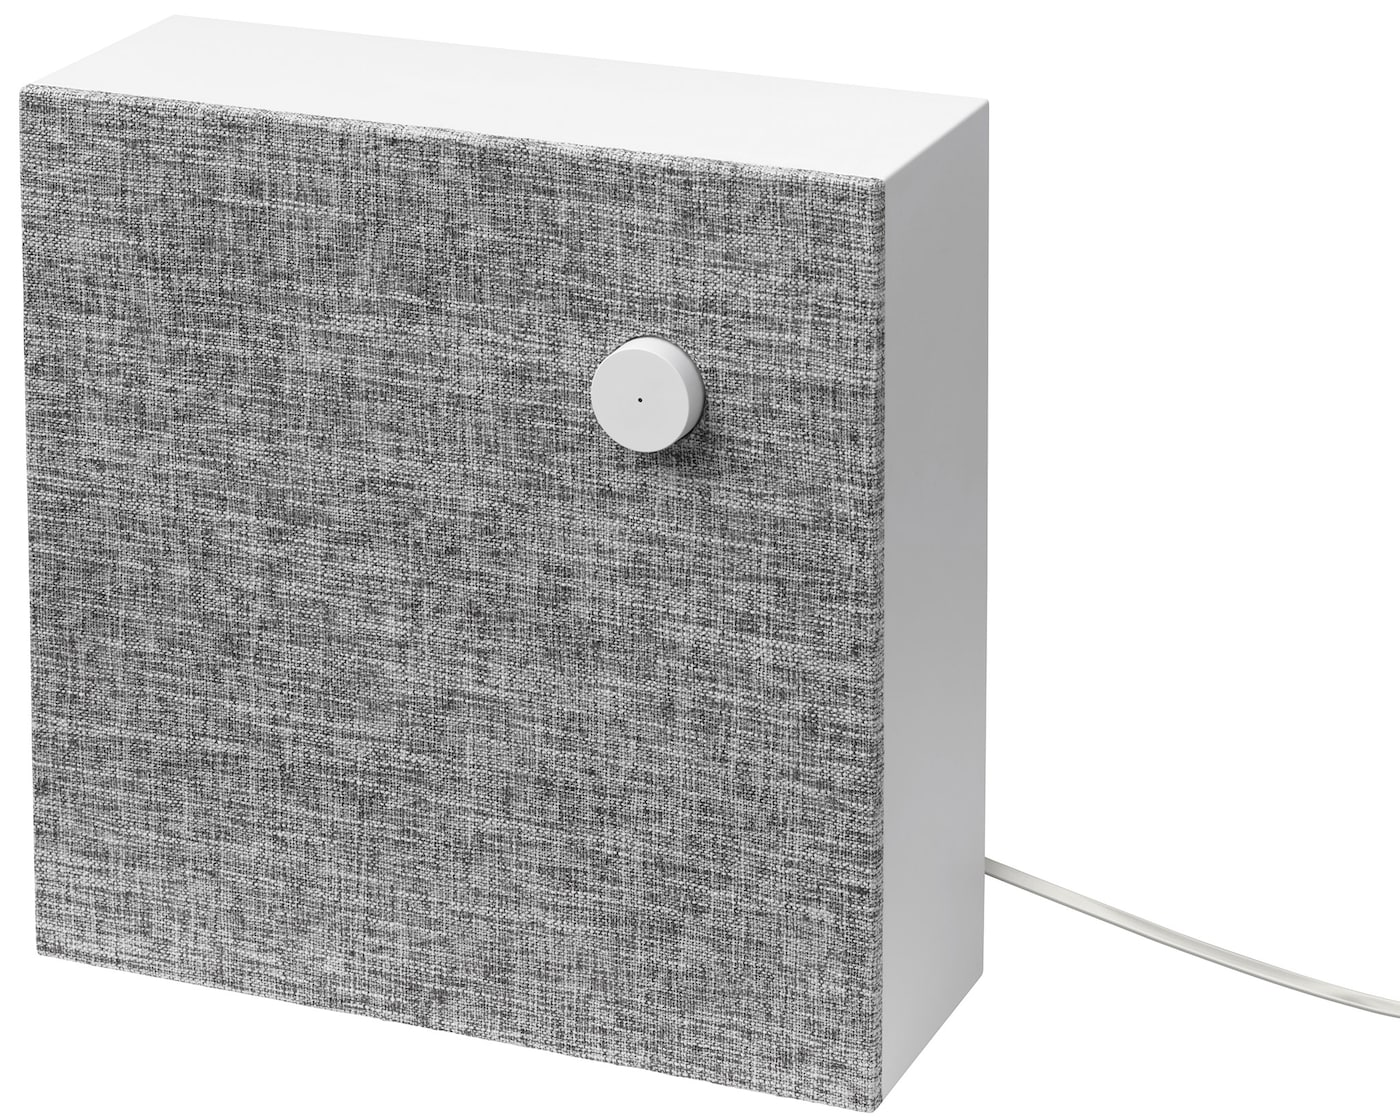 Link to 'Sound and speakers support' - image of grey and white ENEBY Bluetooth speaker against a white background.